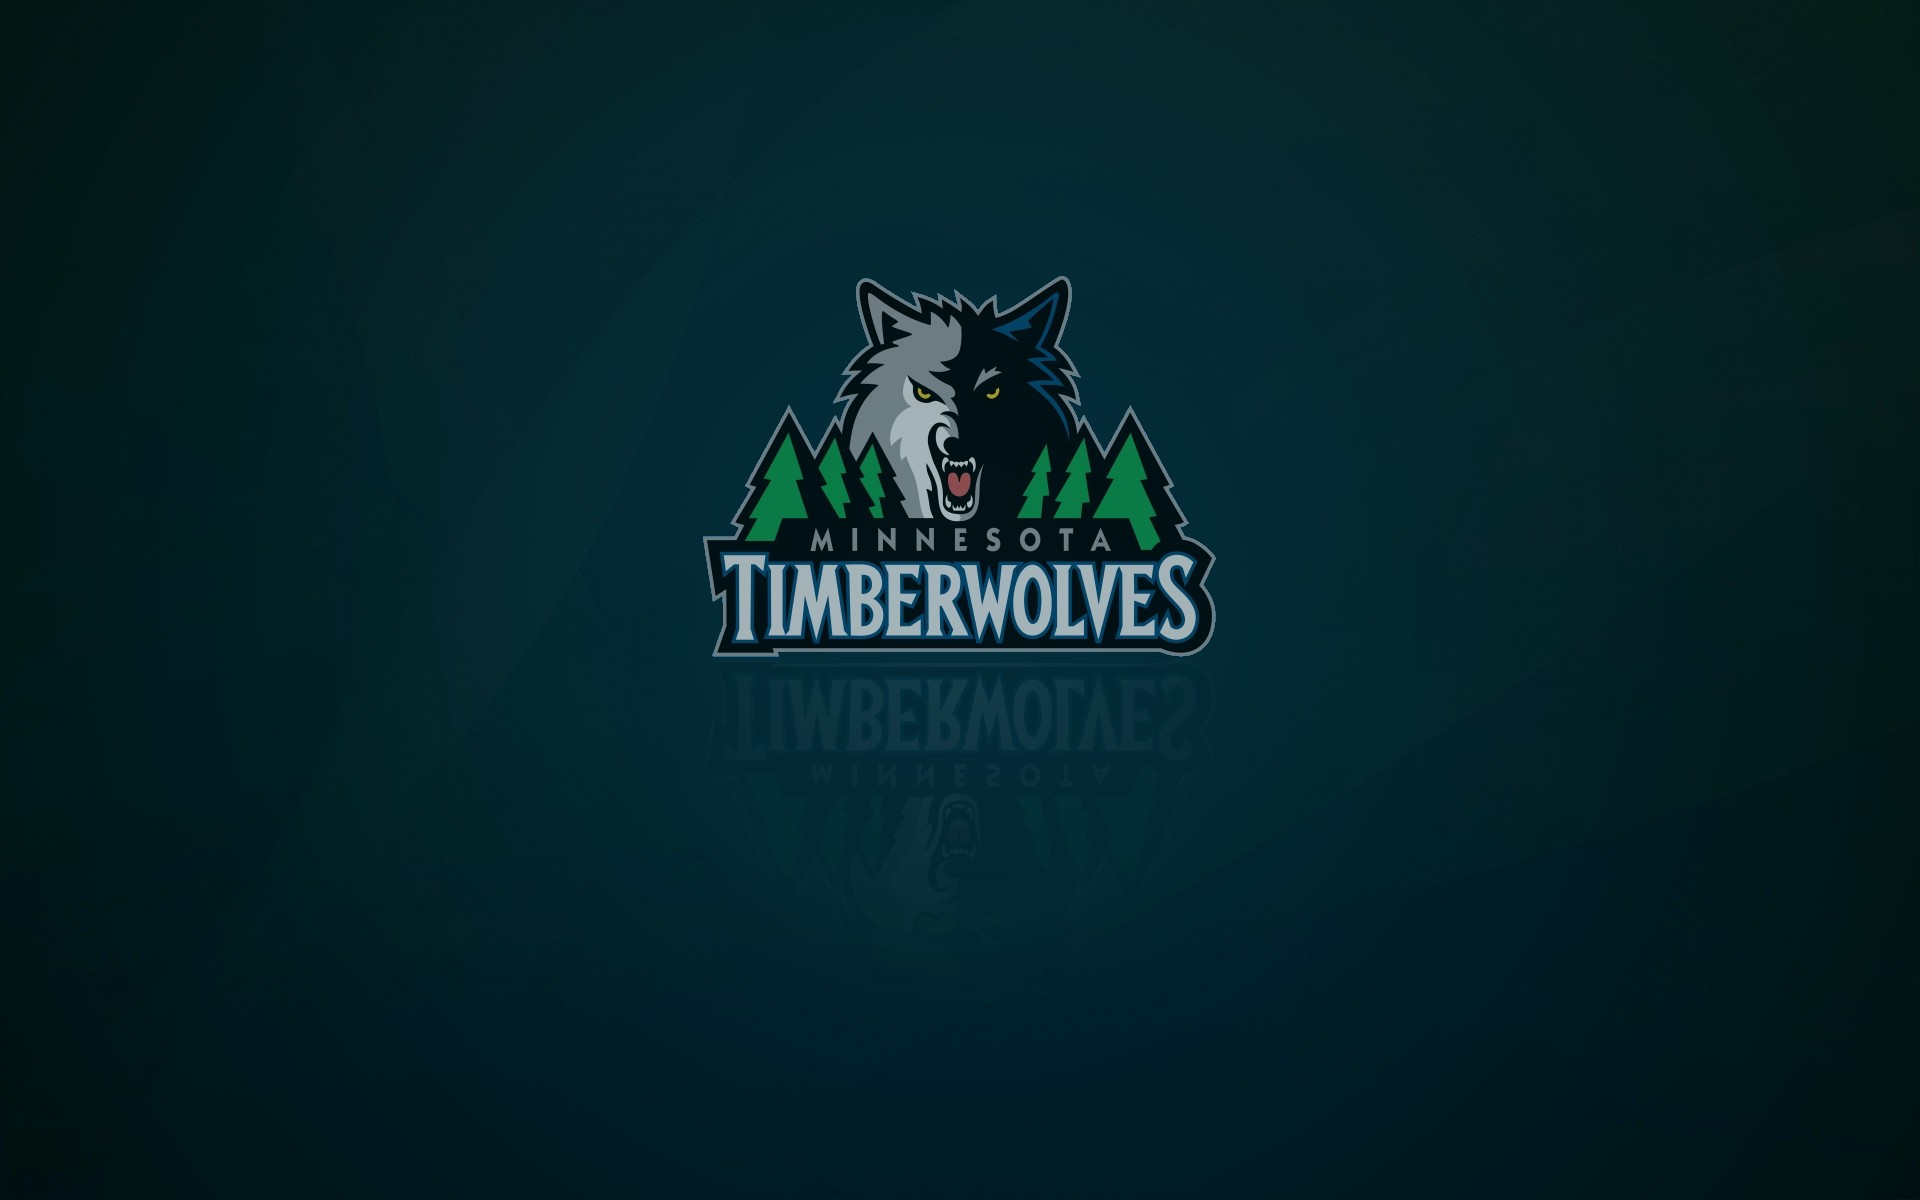 1920x1200 Minnesota Timberwolves wallpaper and logo with shadow on it, widescreen  16x10,  px